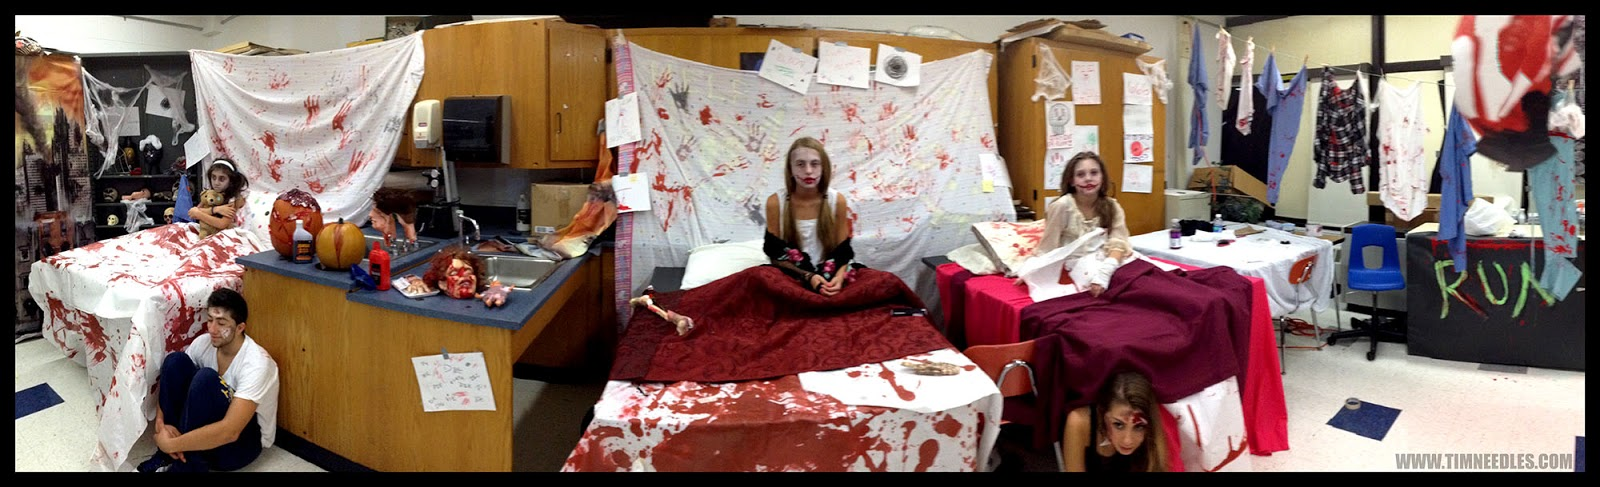 Halloween And Haunted House Room Design Ideas